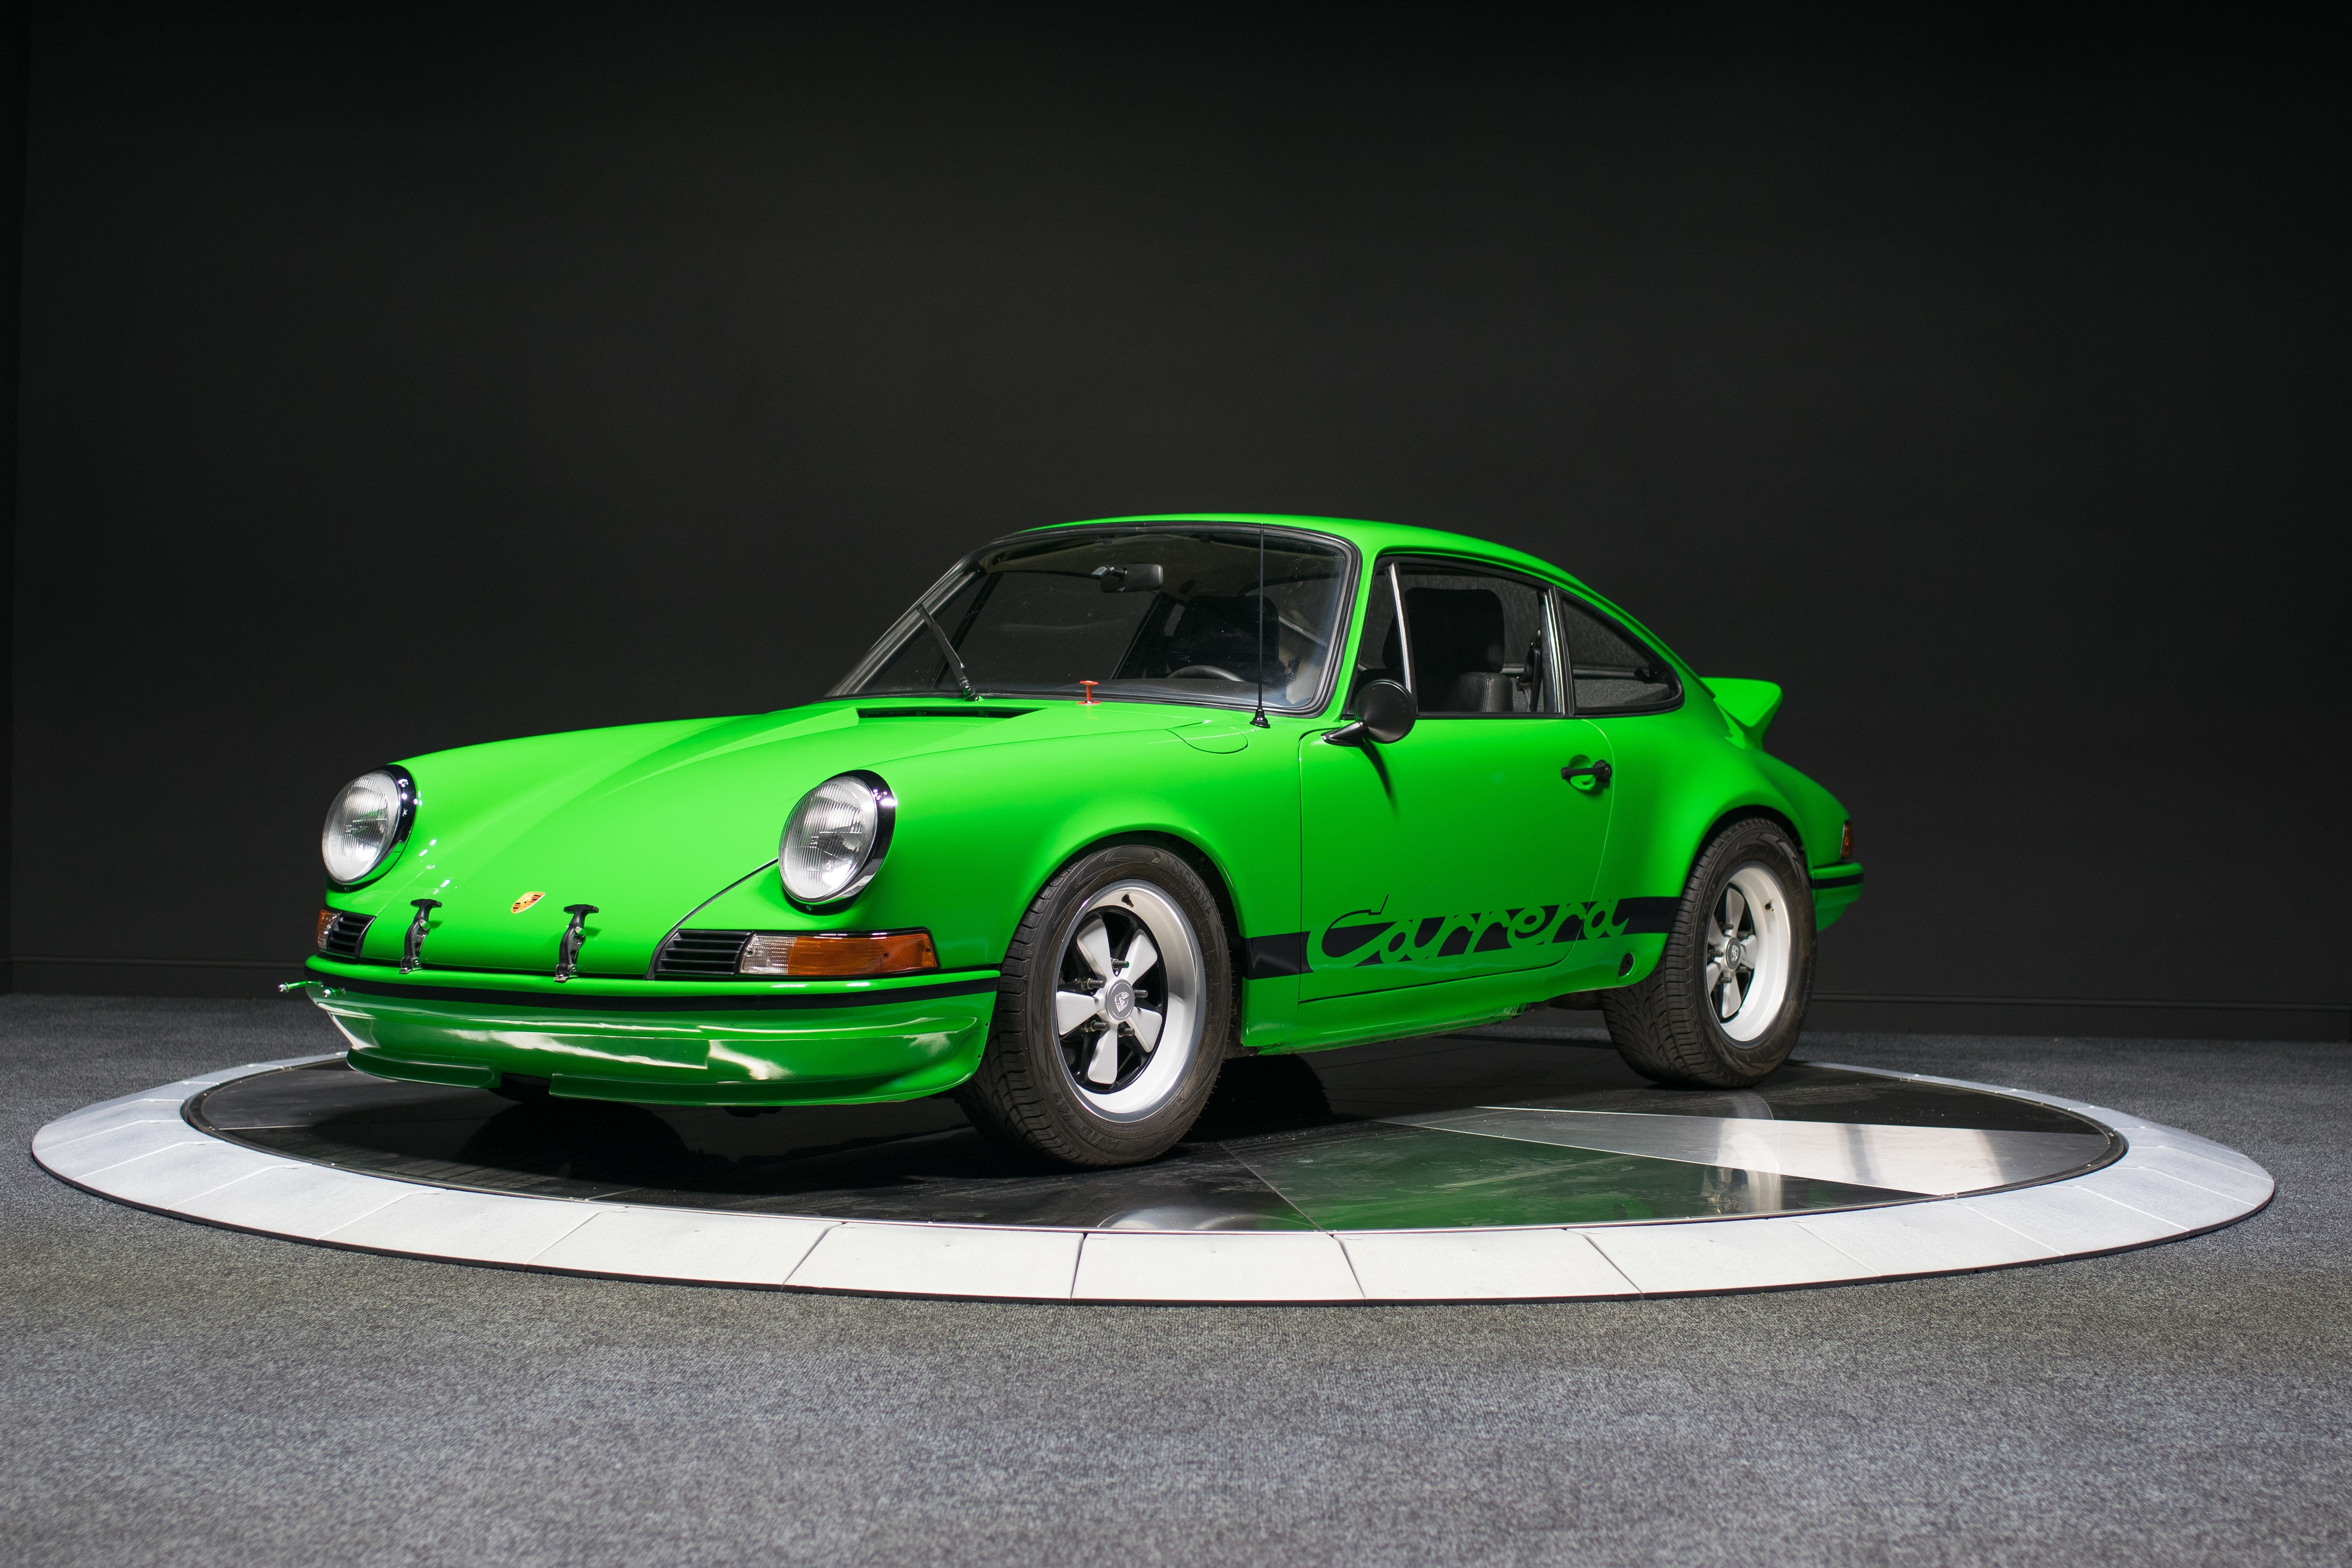 1971 porsche 911 e trissl sports cars classic porsche specialists. Black Bedroom Furniture Sets. Home Design Ideas